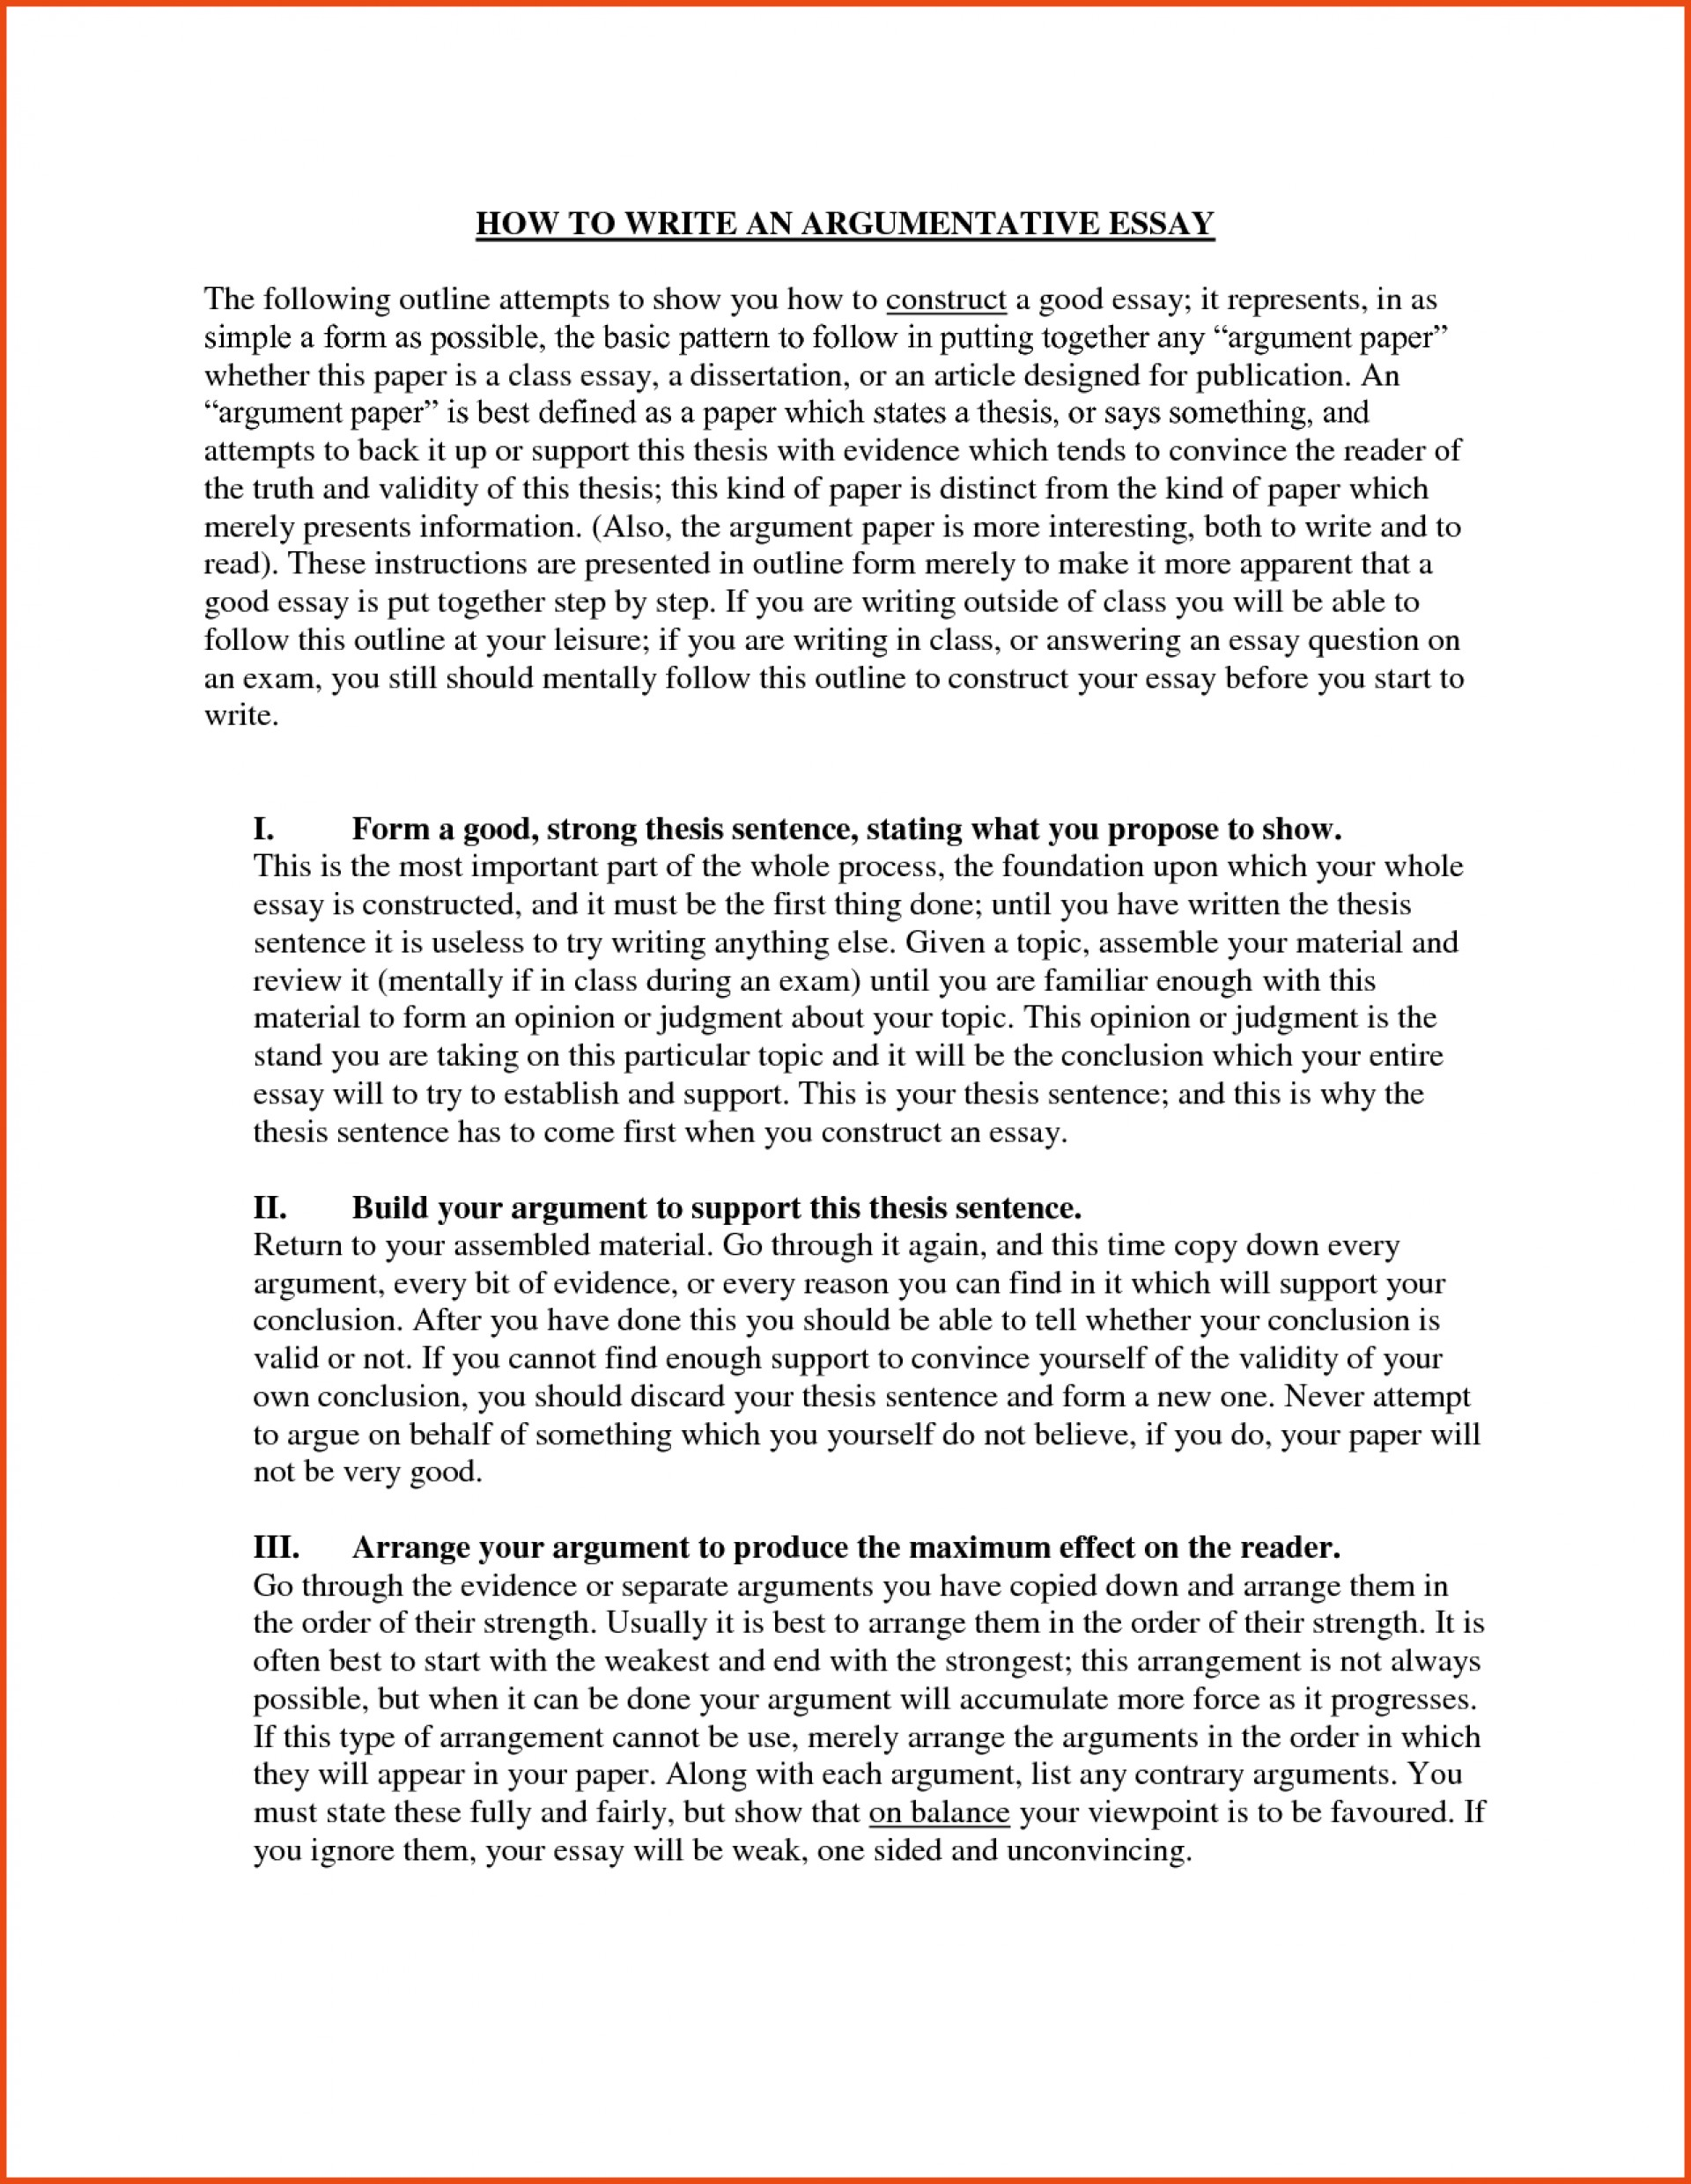 005 Essay Example How To Start An Brilliant Ideas Of Good Ways About Yourself Dissertation Nice Amazing With A Question Introduction Quote Apa 1920